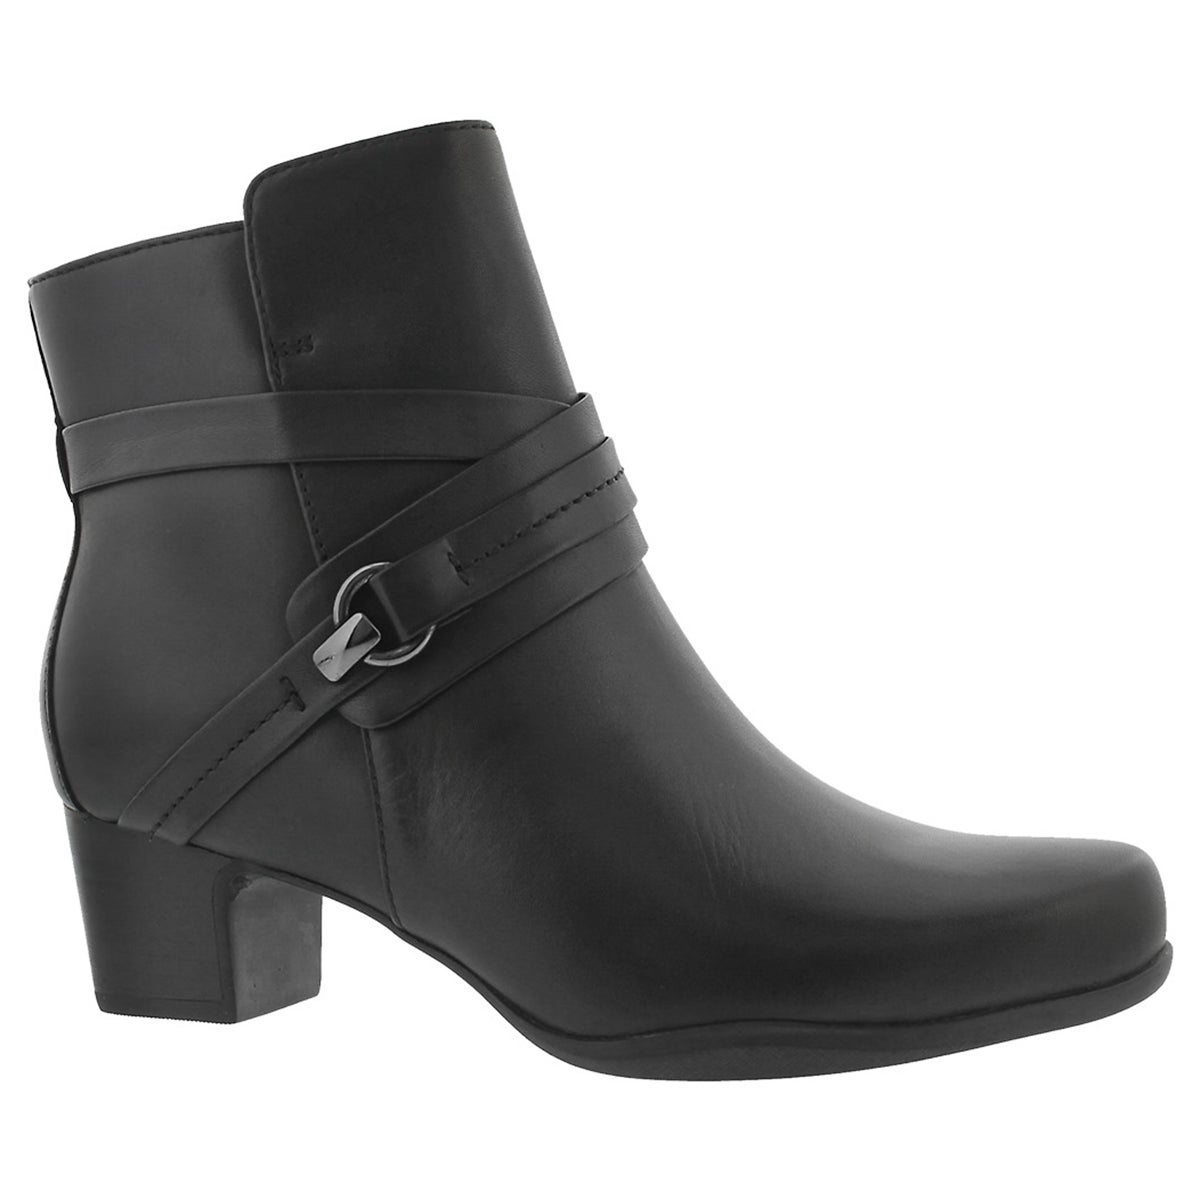 Women's ROSALYN PAGE blk waterproof dress boots